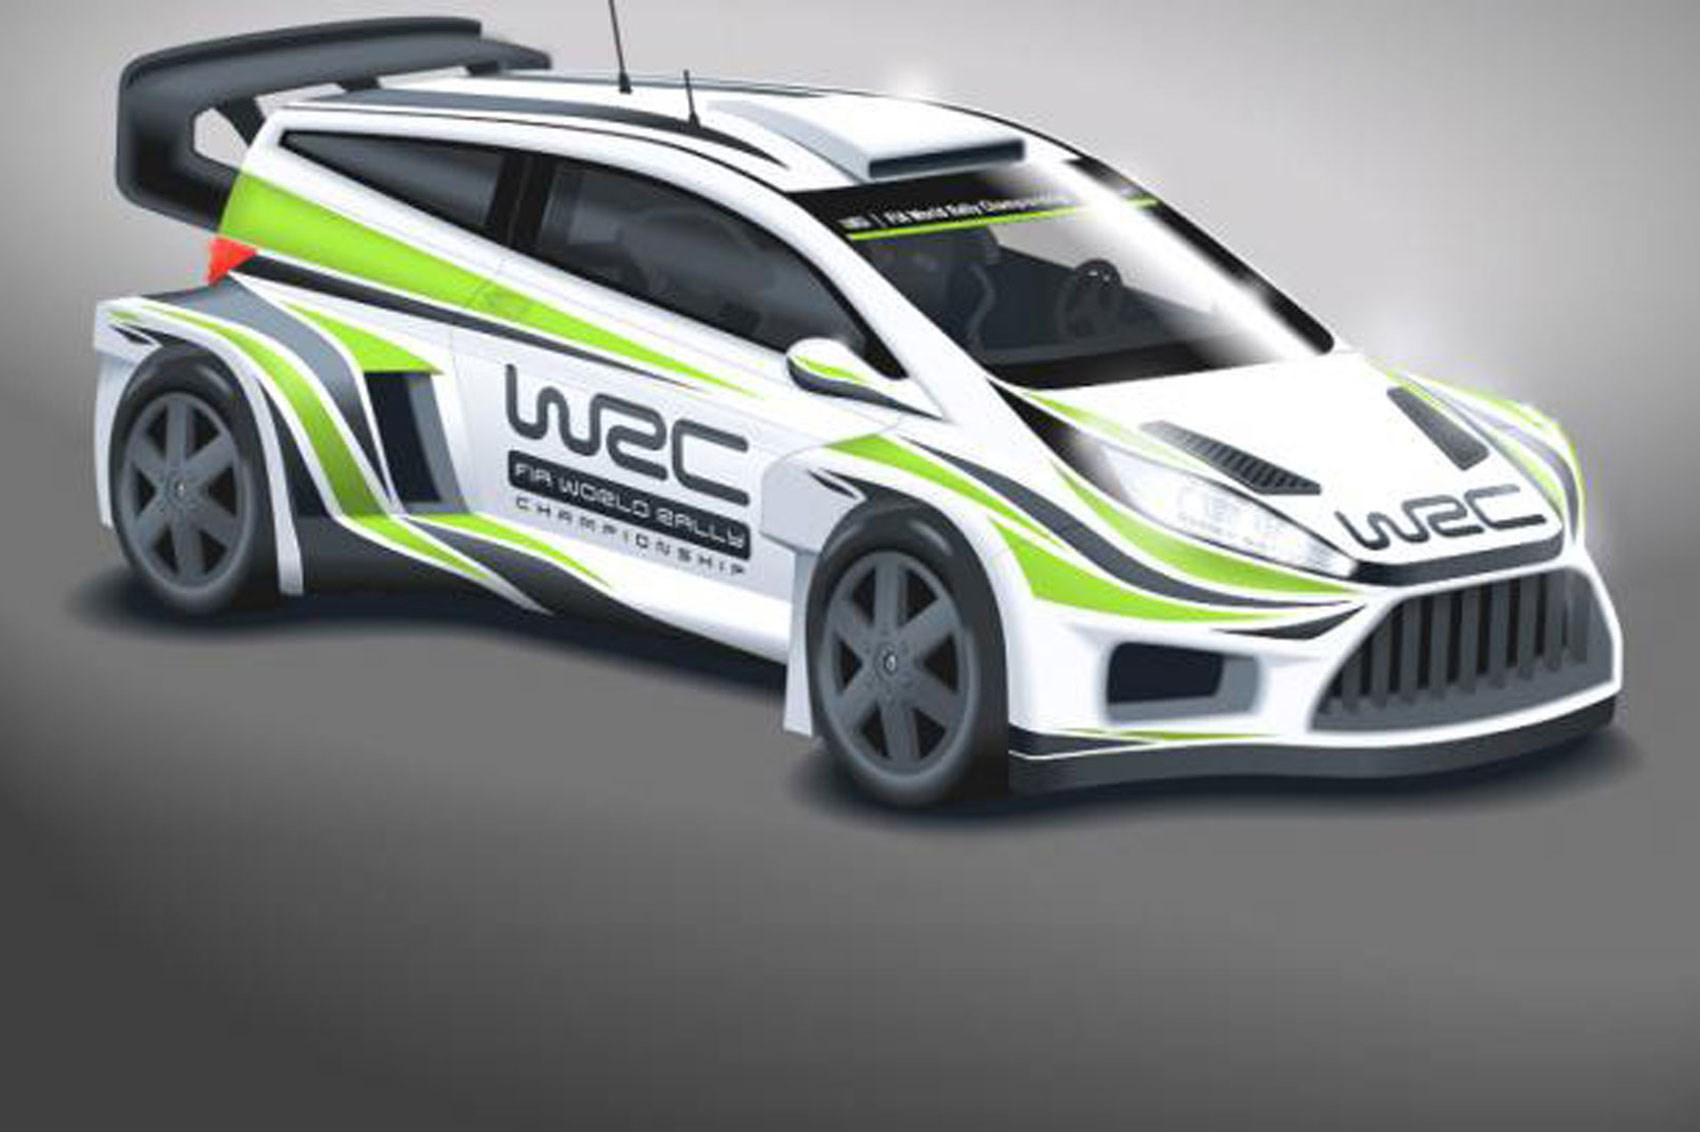 Ultrablogus  Winsome Wild New Look For Wrc Cars In  By Car Magazine With Magnificent Wrc Cars Will Get Wider Bodies Bigger Wings And More Power For  With Easy On The Eye C Interior Also  E Interior In Addition  Ford F  Interior Pics And Airstream Trailer Interior As Well As Chevy Express Interior Additionally Chrysler Interior From Carmagazinecouk With Ultrablogus  Magnificent Wild New Look For Wrc Cars In  By Car Magazine With Easy On The Eye Wrc Cars Will Get Wider Bodies Bigger Wings And More Power For  And Winsome C Interior Also  E Interior In Addition  Ford F  Interior Pics From Carmagazinecouk